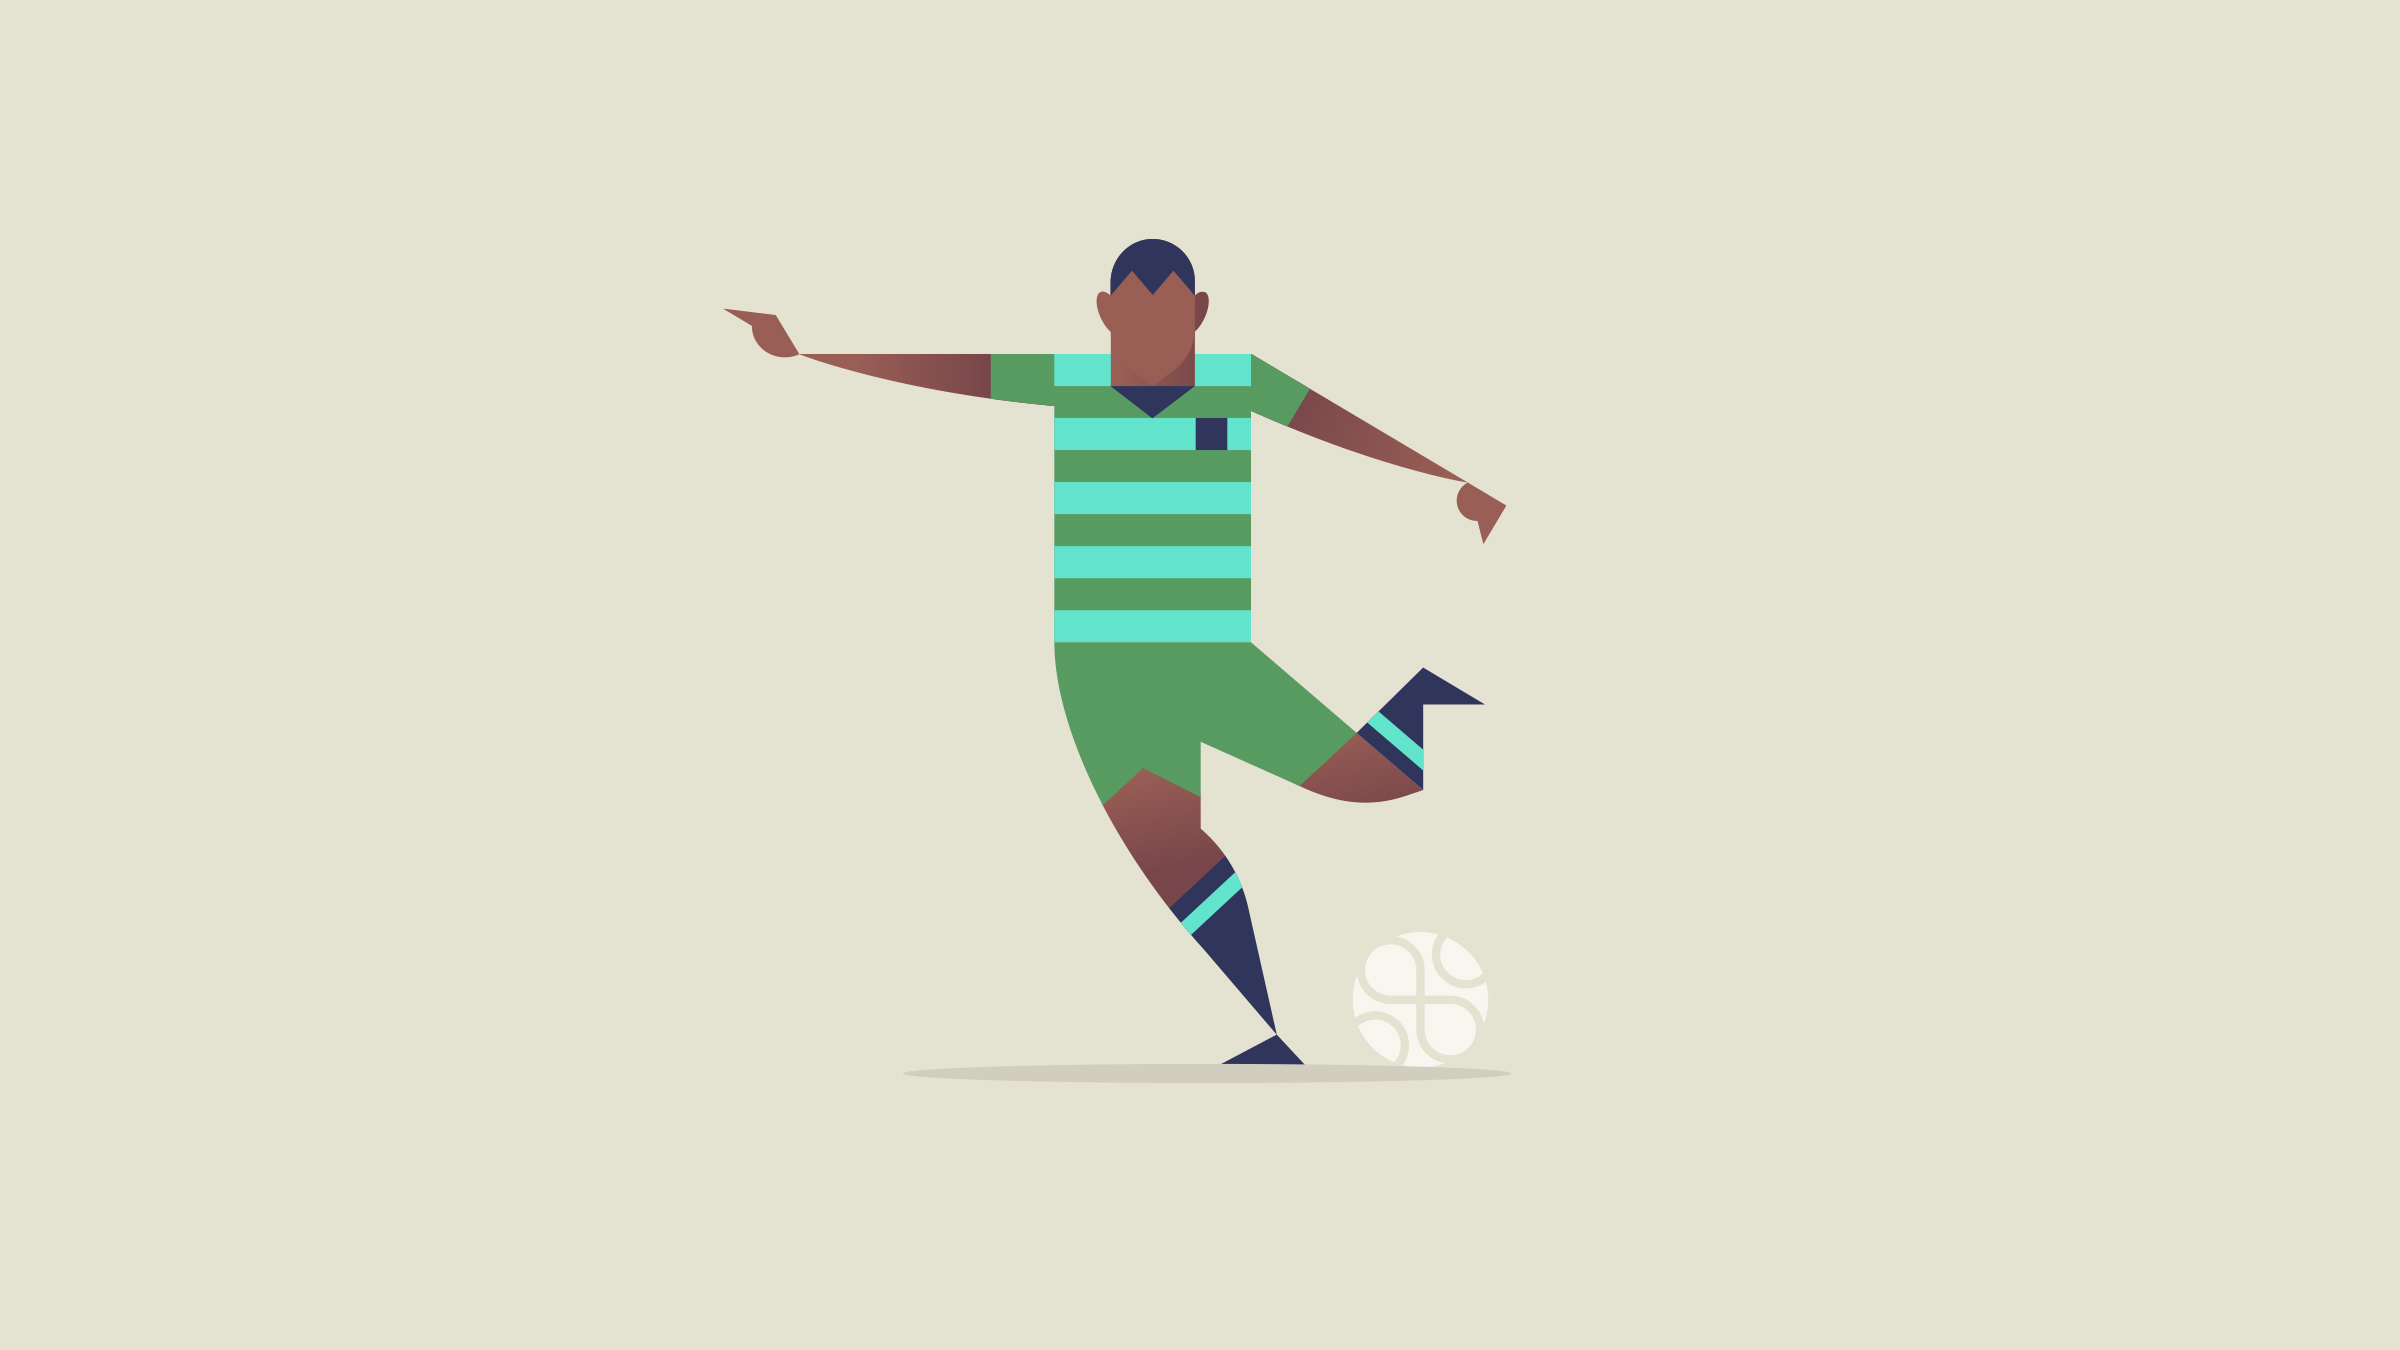 Apple Soccer Football Illustration